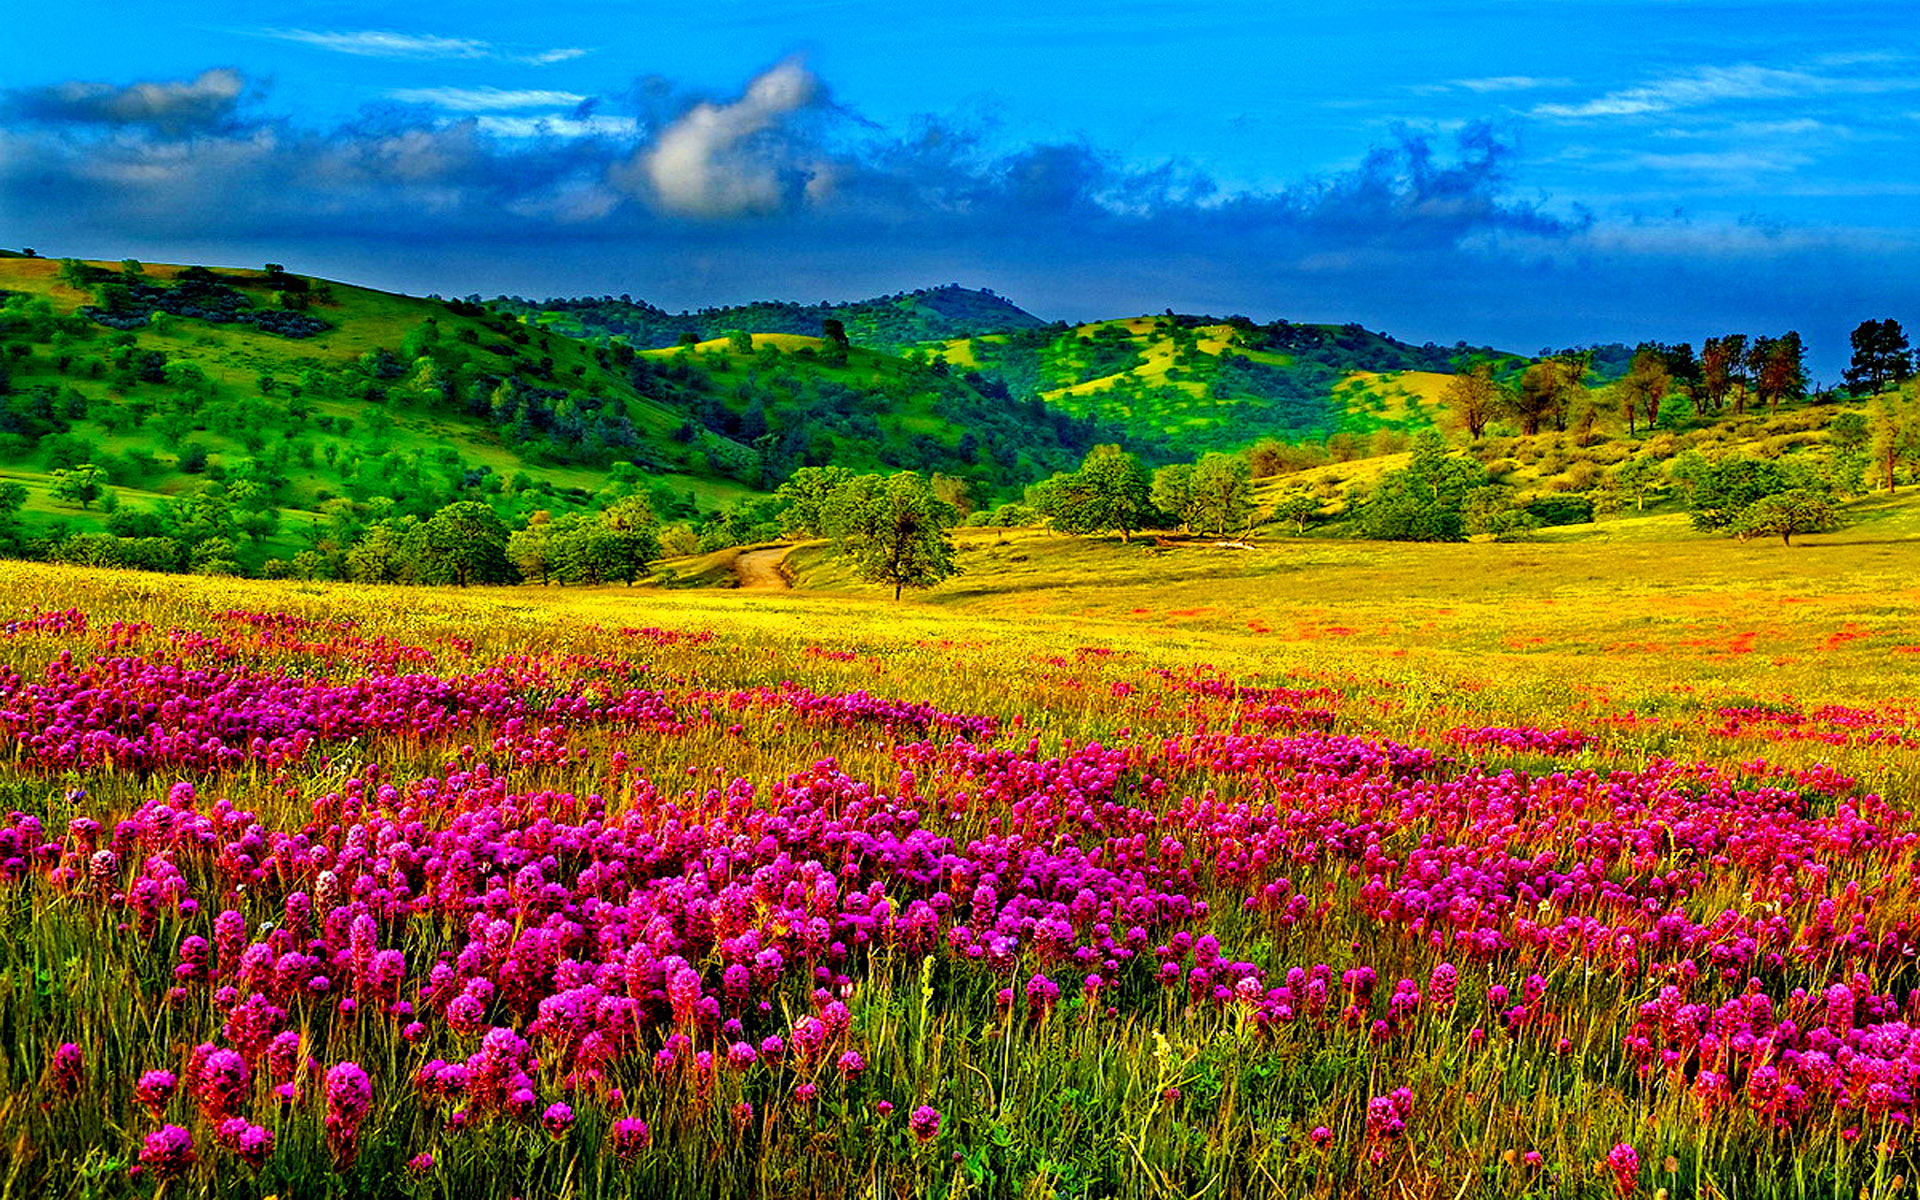 Free Fall Wallpaper For Iphone 5 Meadow With Purple Flowers Hills With Trees And Green